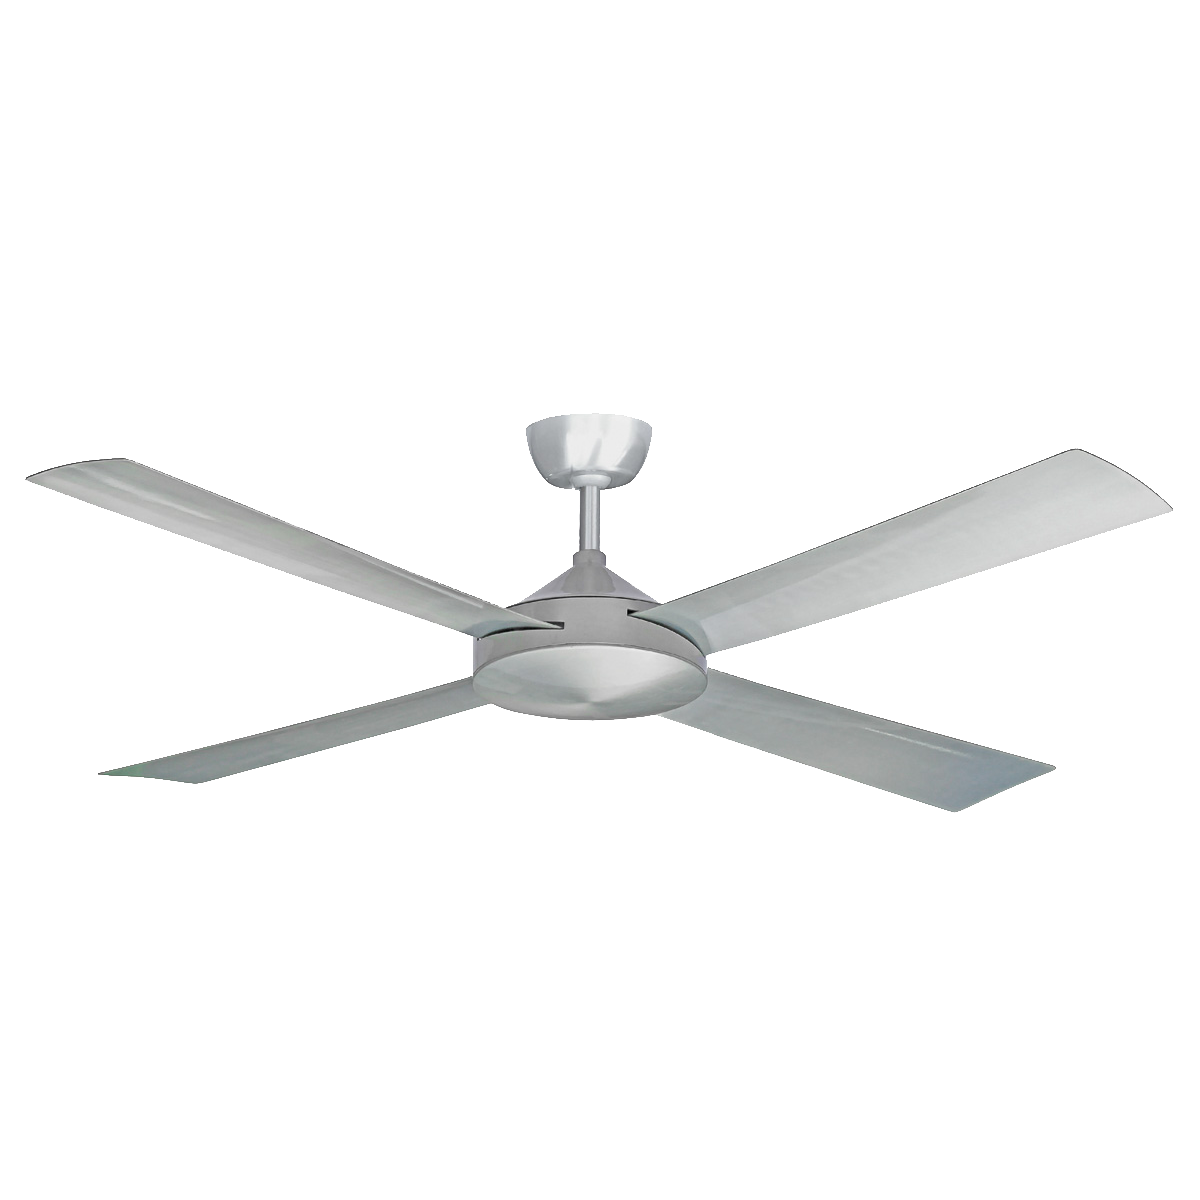 Buy Windmill Asana Neo 60 Quot Luxury Ceiling Fan Online At Low Price In India